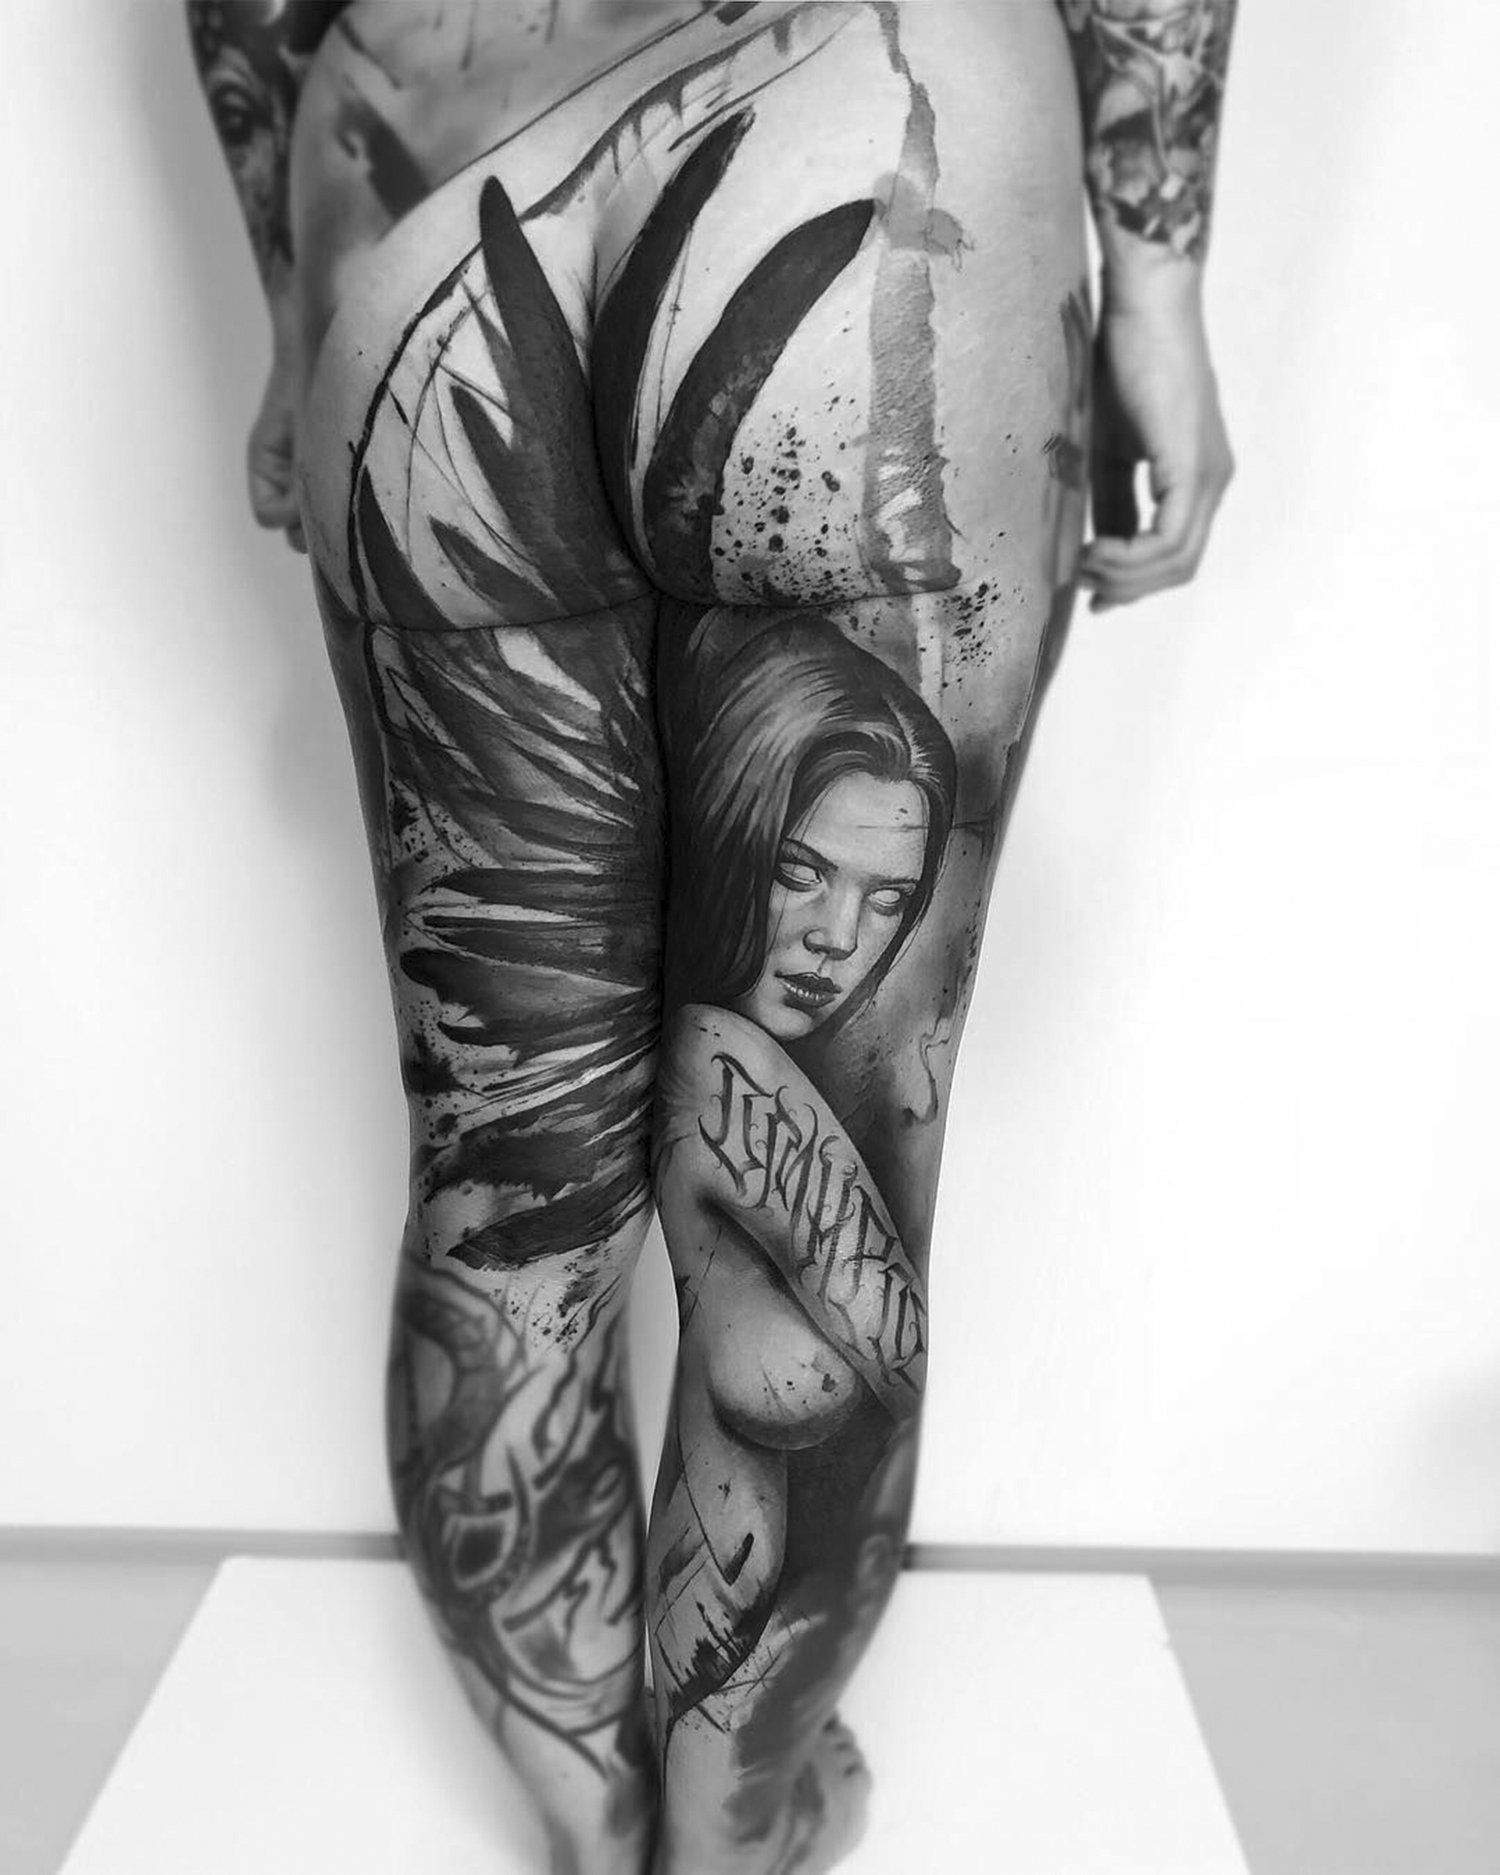 natalie nox and benjamin laukis collaborative tattoo on legs, angel tattoo